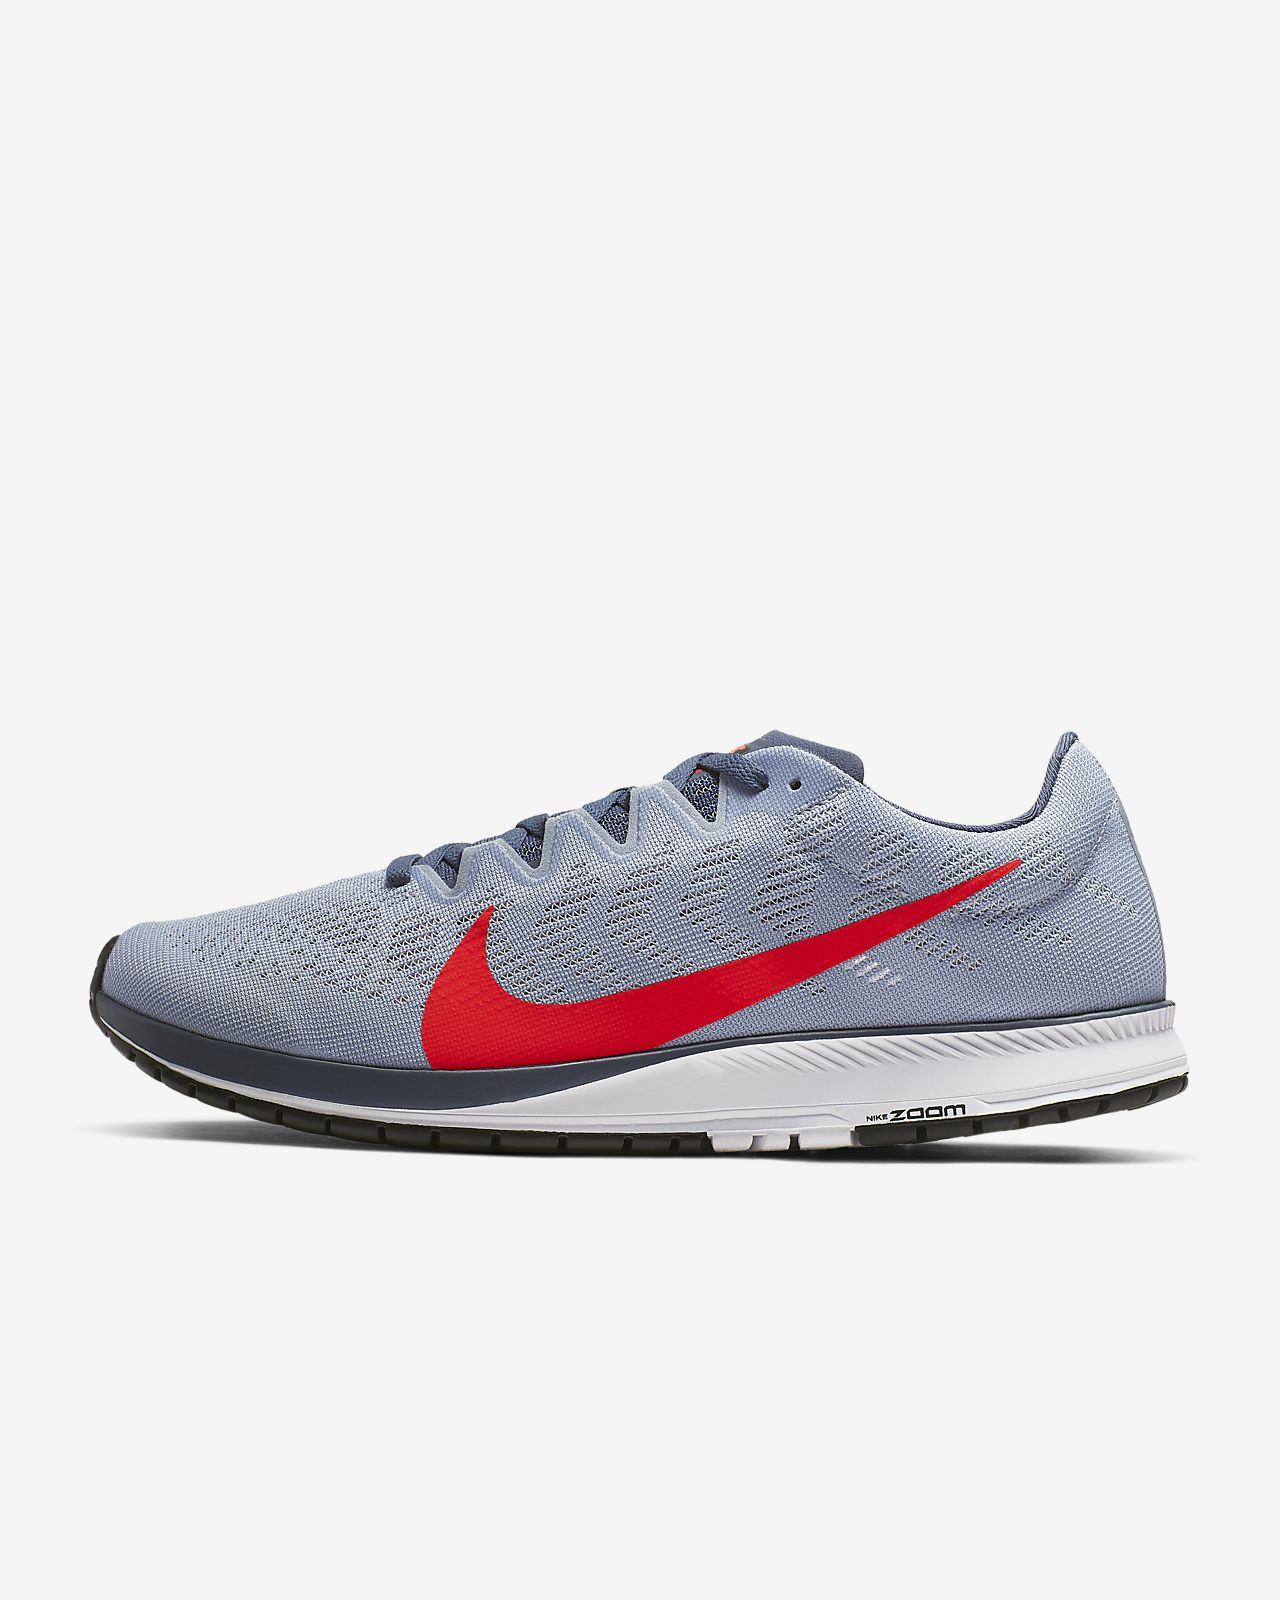 Chaussure de running Nike Air Zoom Streak 7